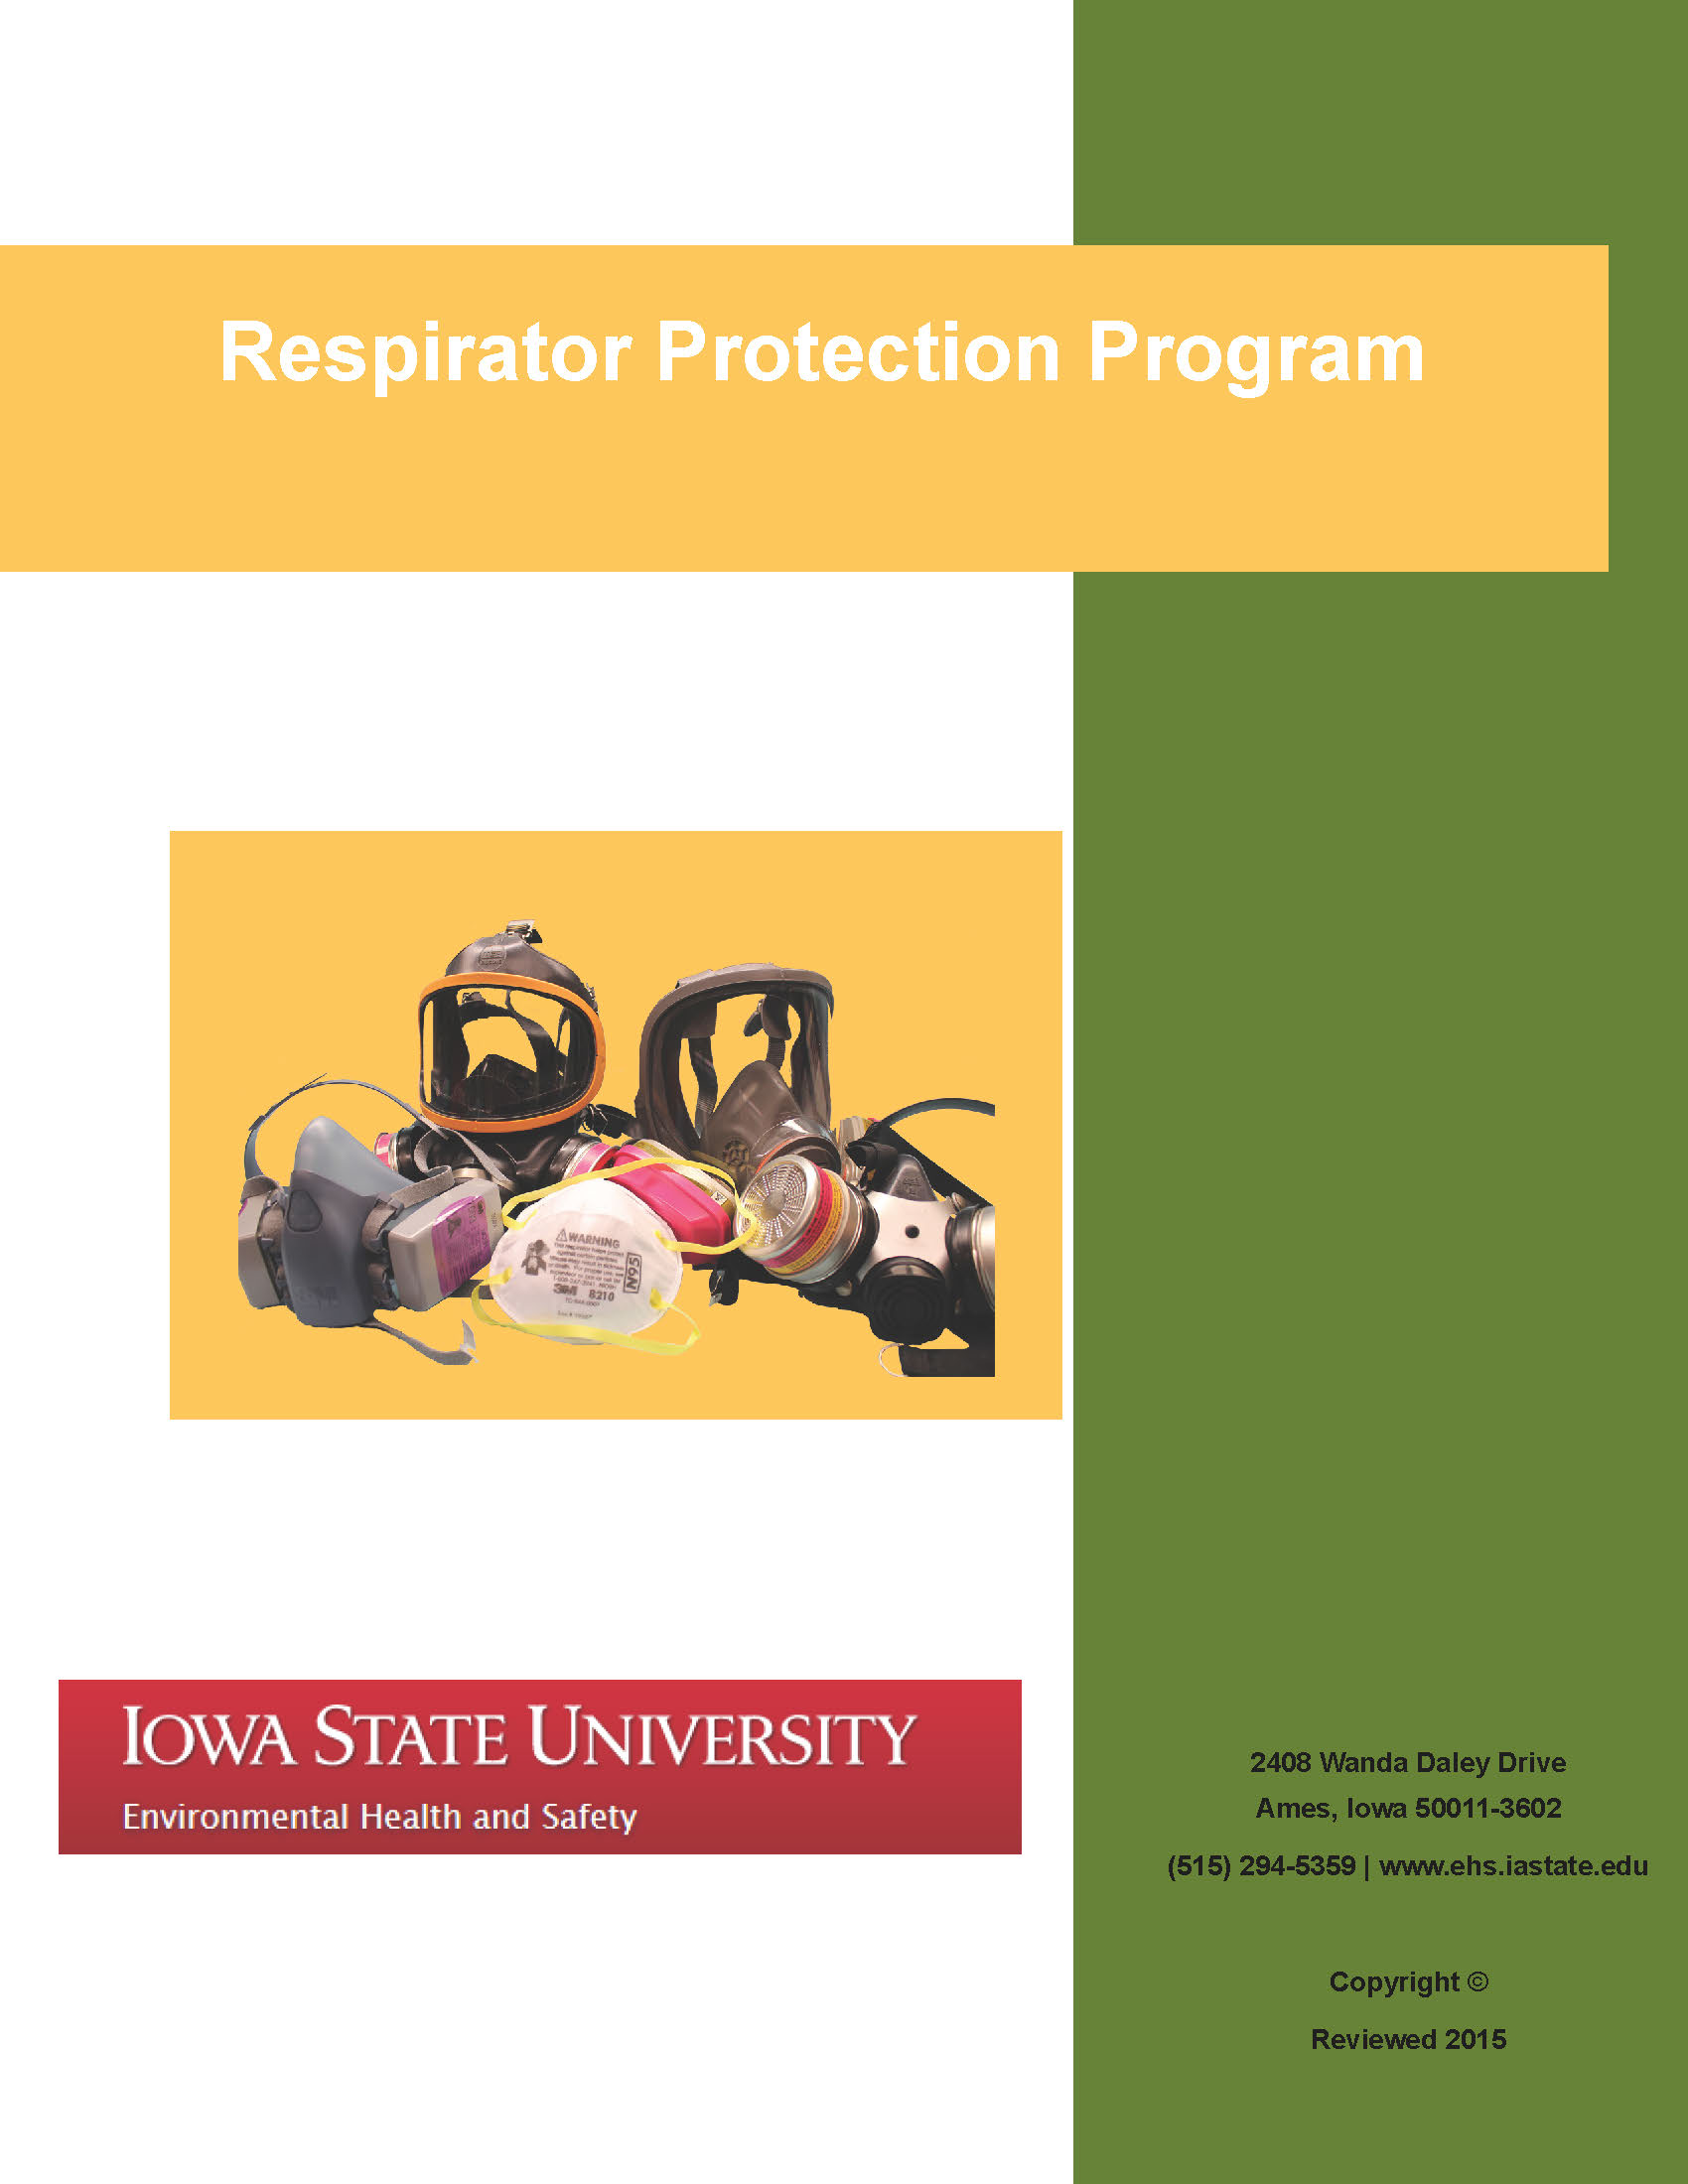 Respirators Environmental Health And Safety Iowa State University